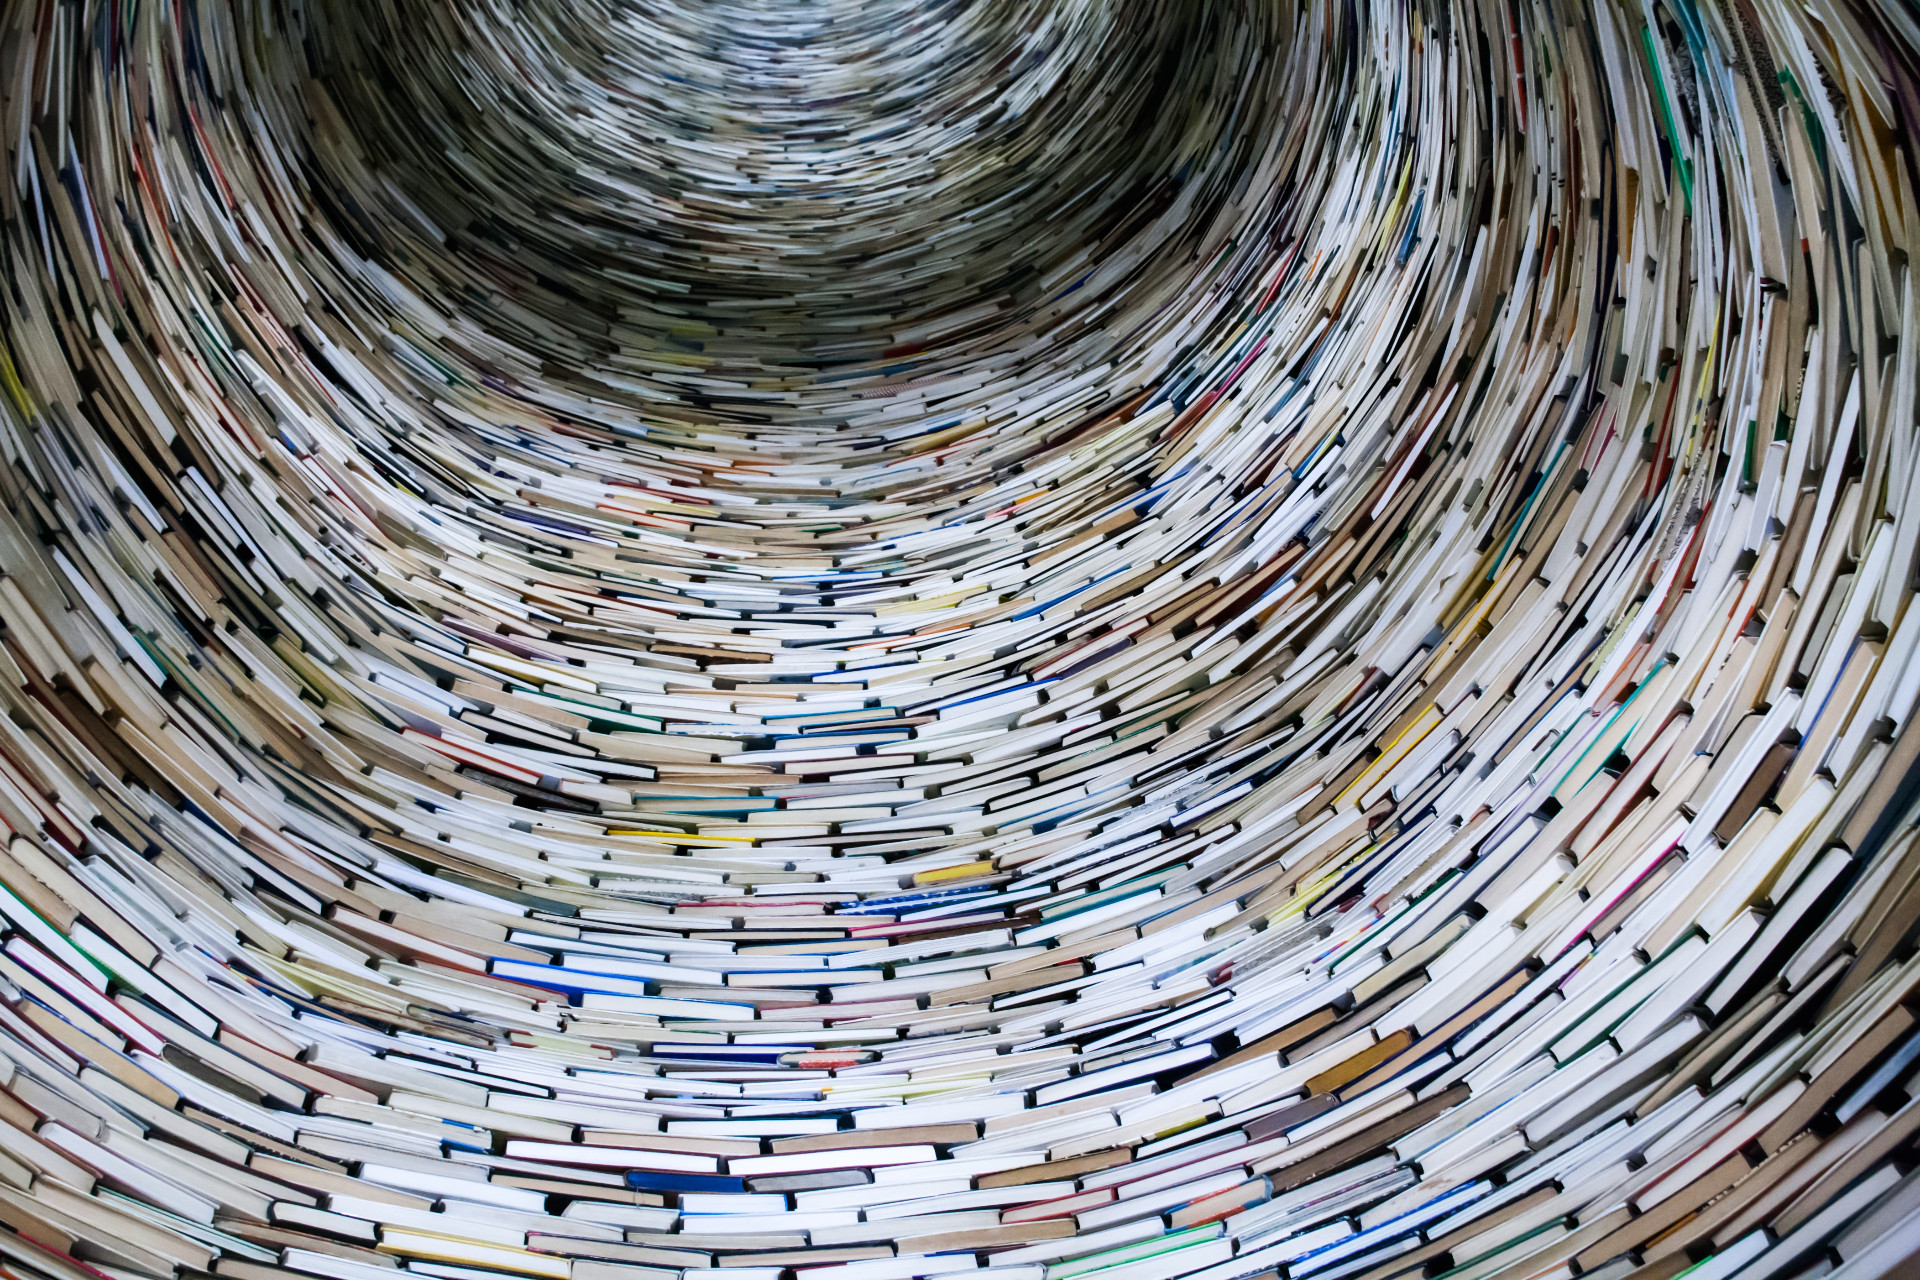 the inside view on a tower of stacked books